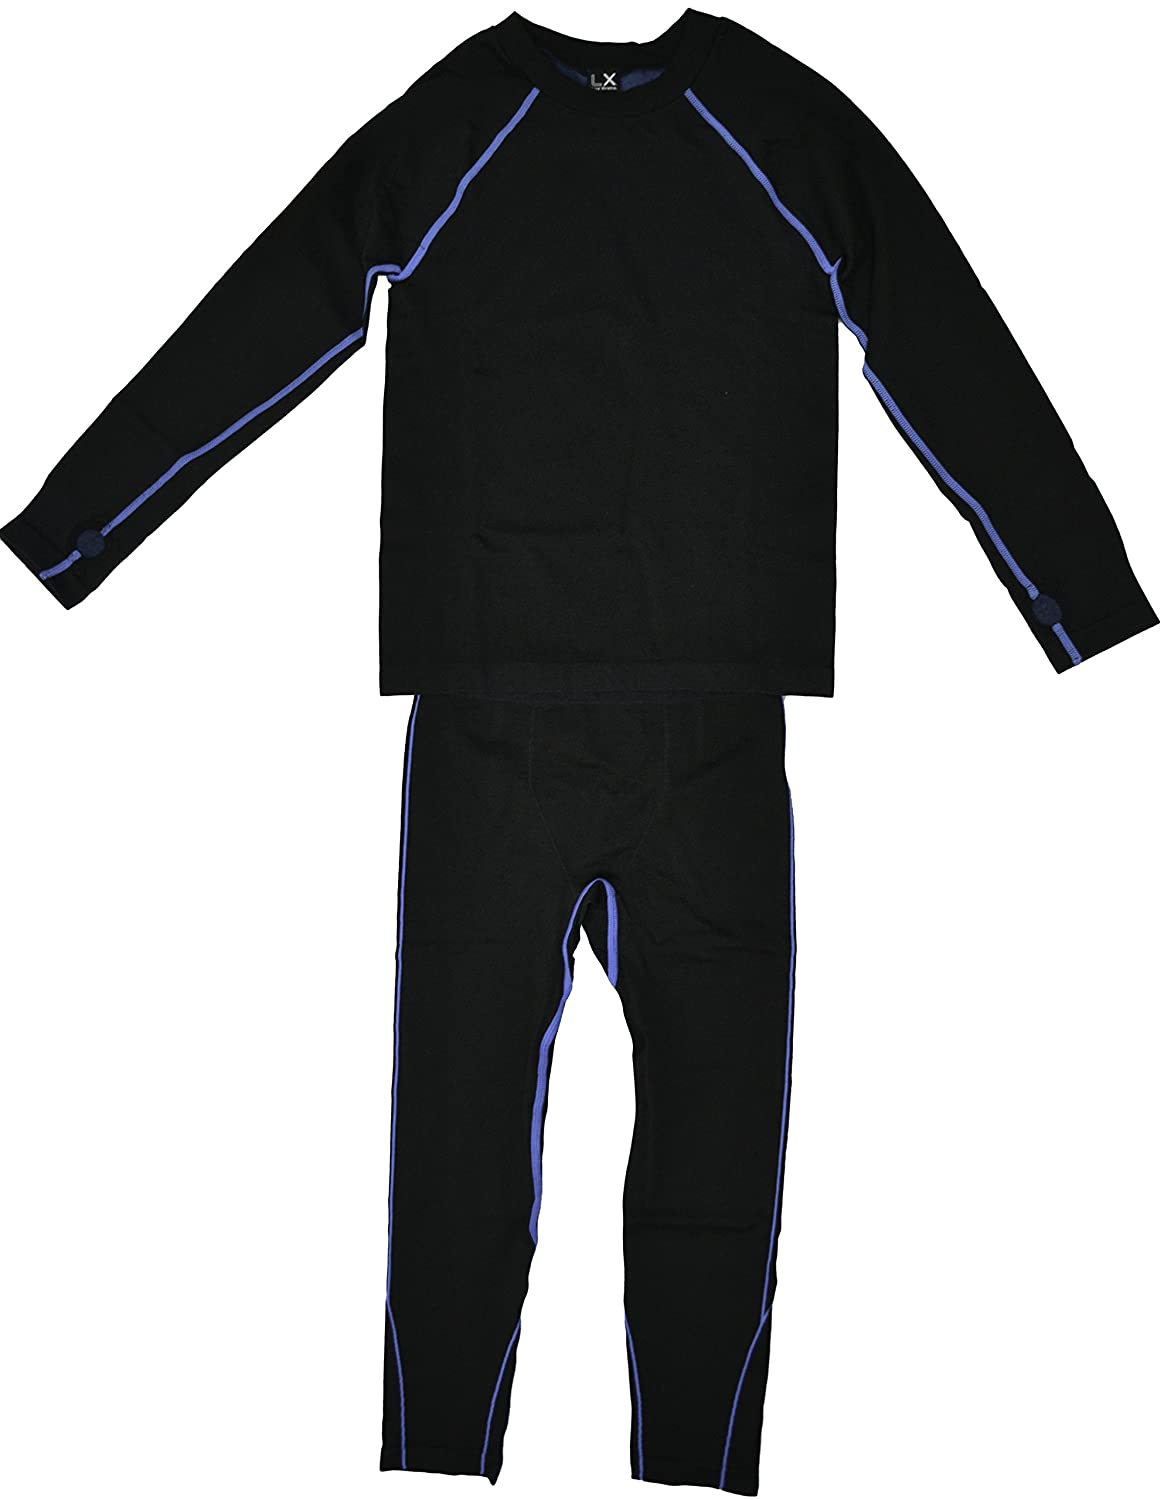 LX Live Xtreme Boys 2PC Base Layer Top and Bottom Set Black (M 8/10)